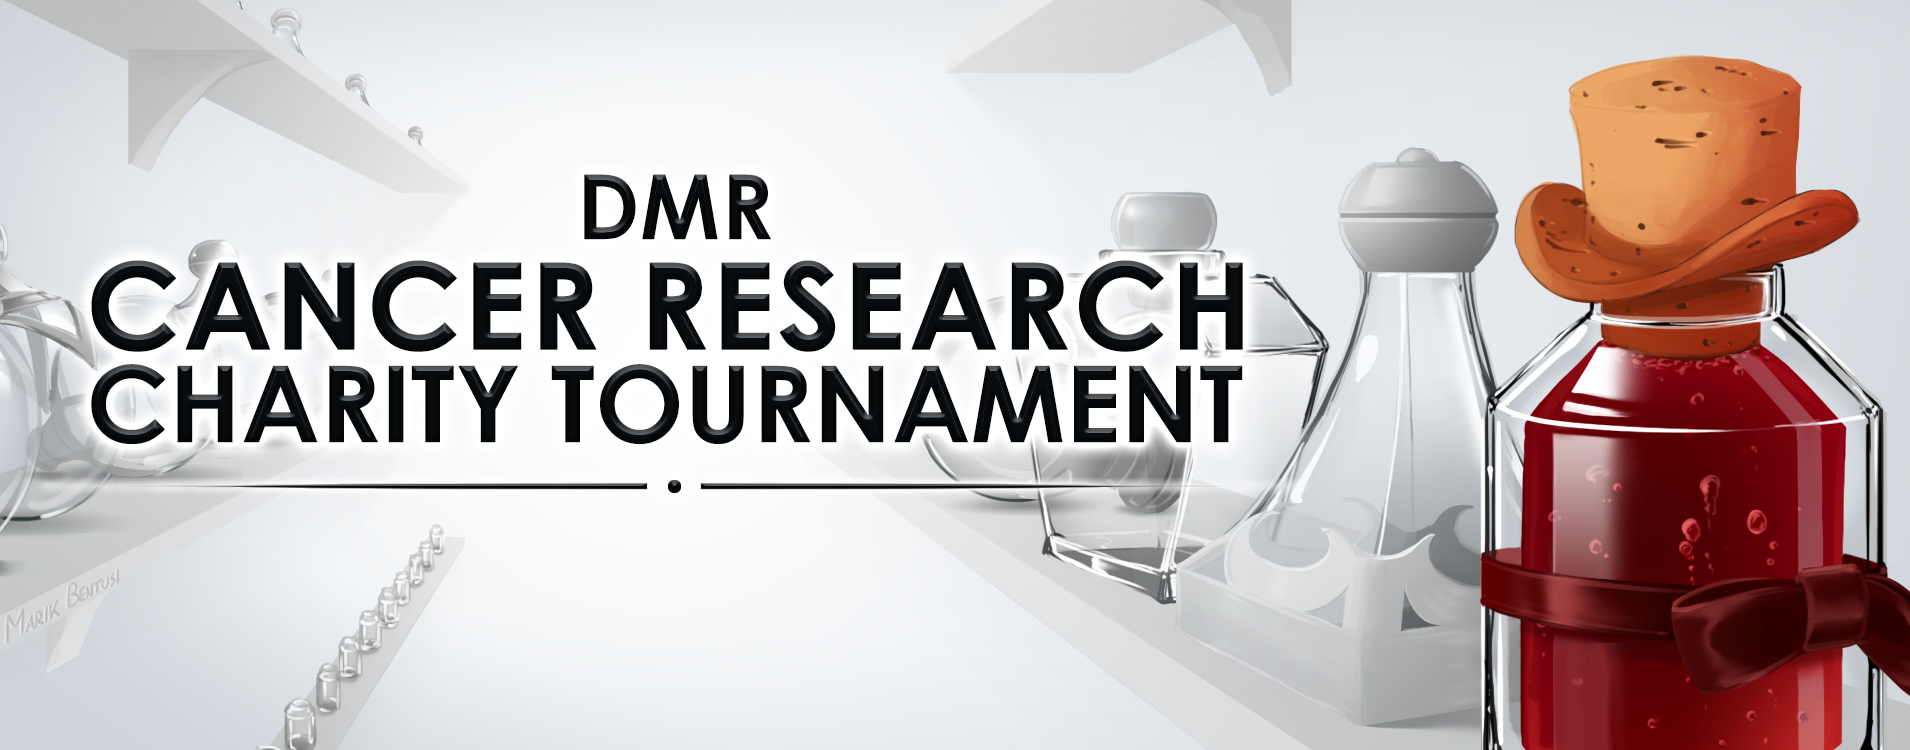 DMR Cancer Research Charity Tournament Card